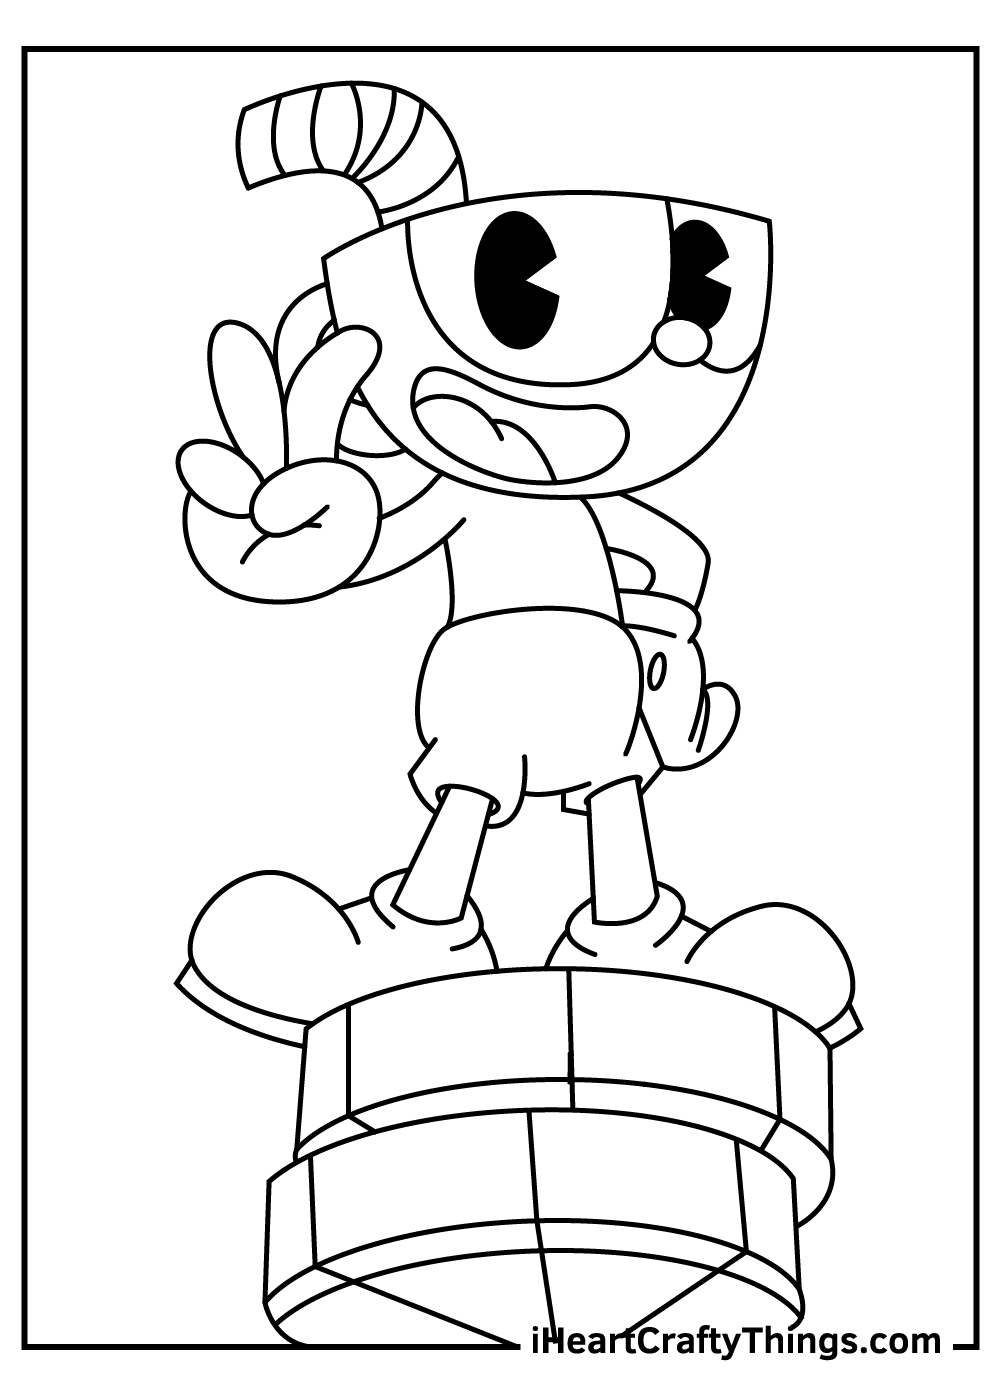 cuphead coloring pages for adults free download